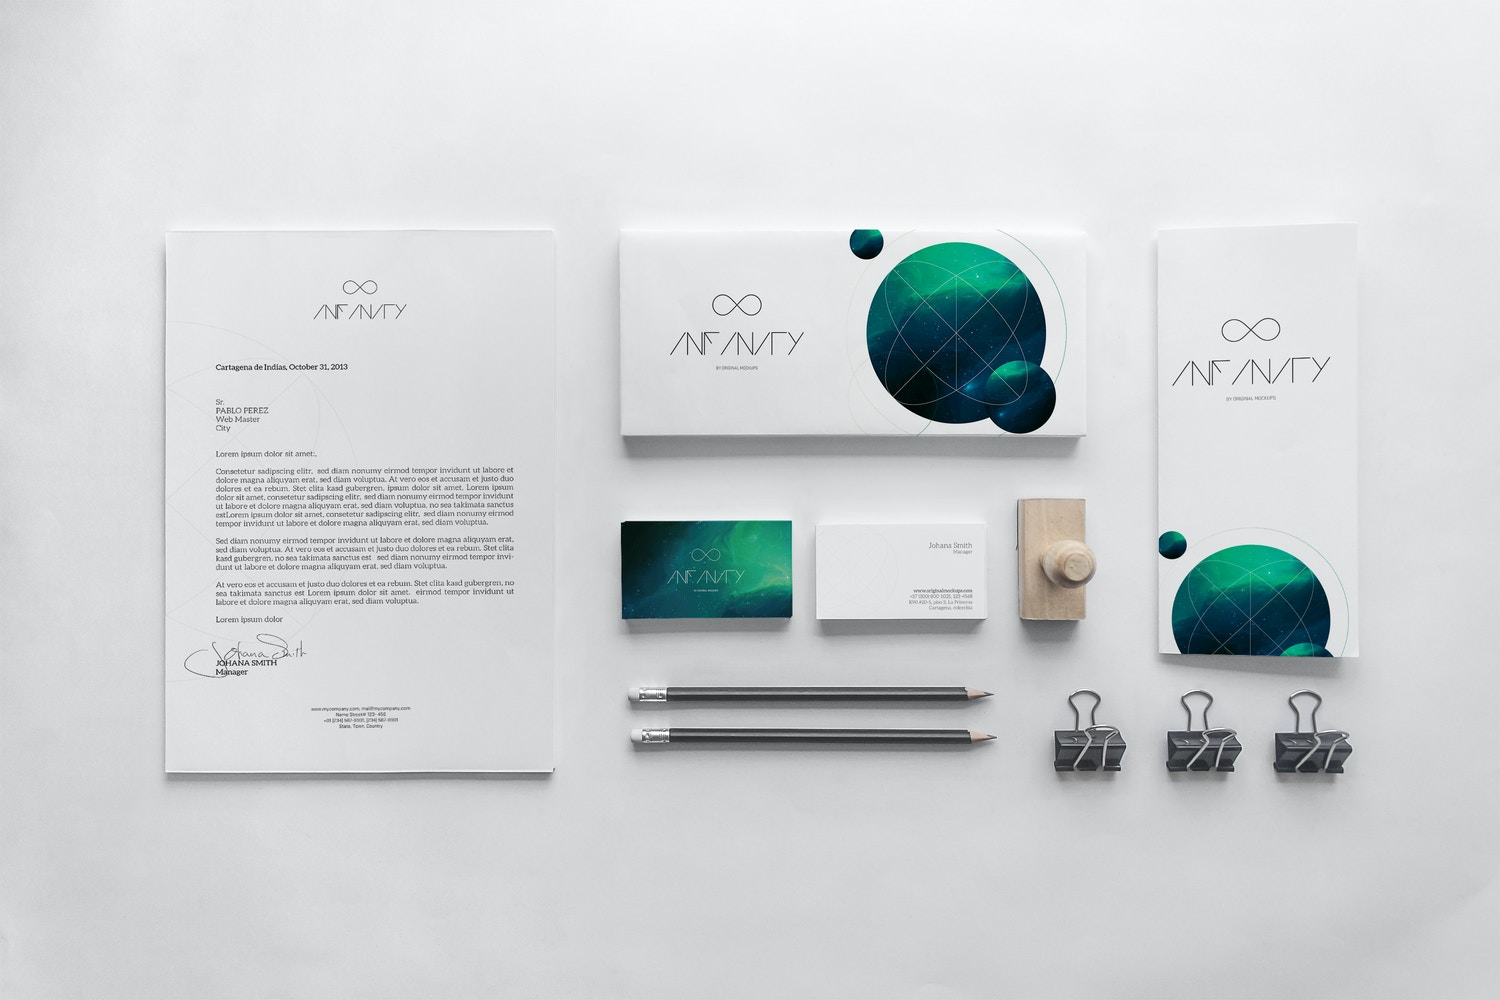 Stationery Mockup 9 by Original Mockups on Original Mockups